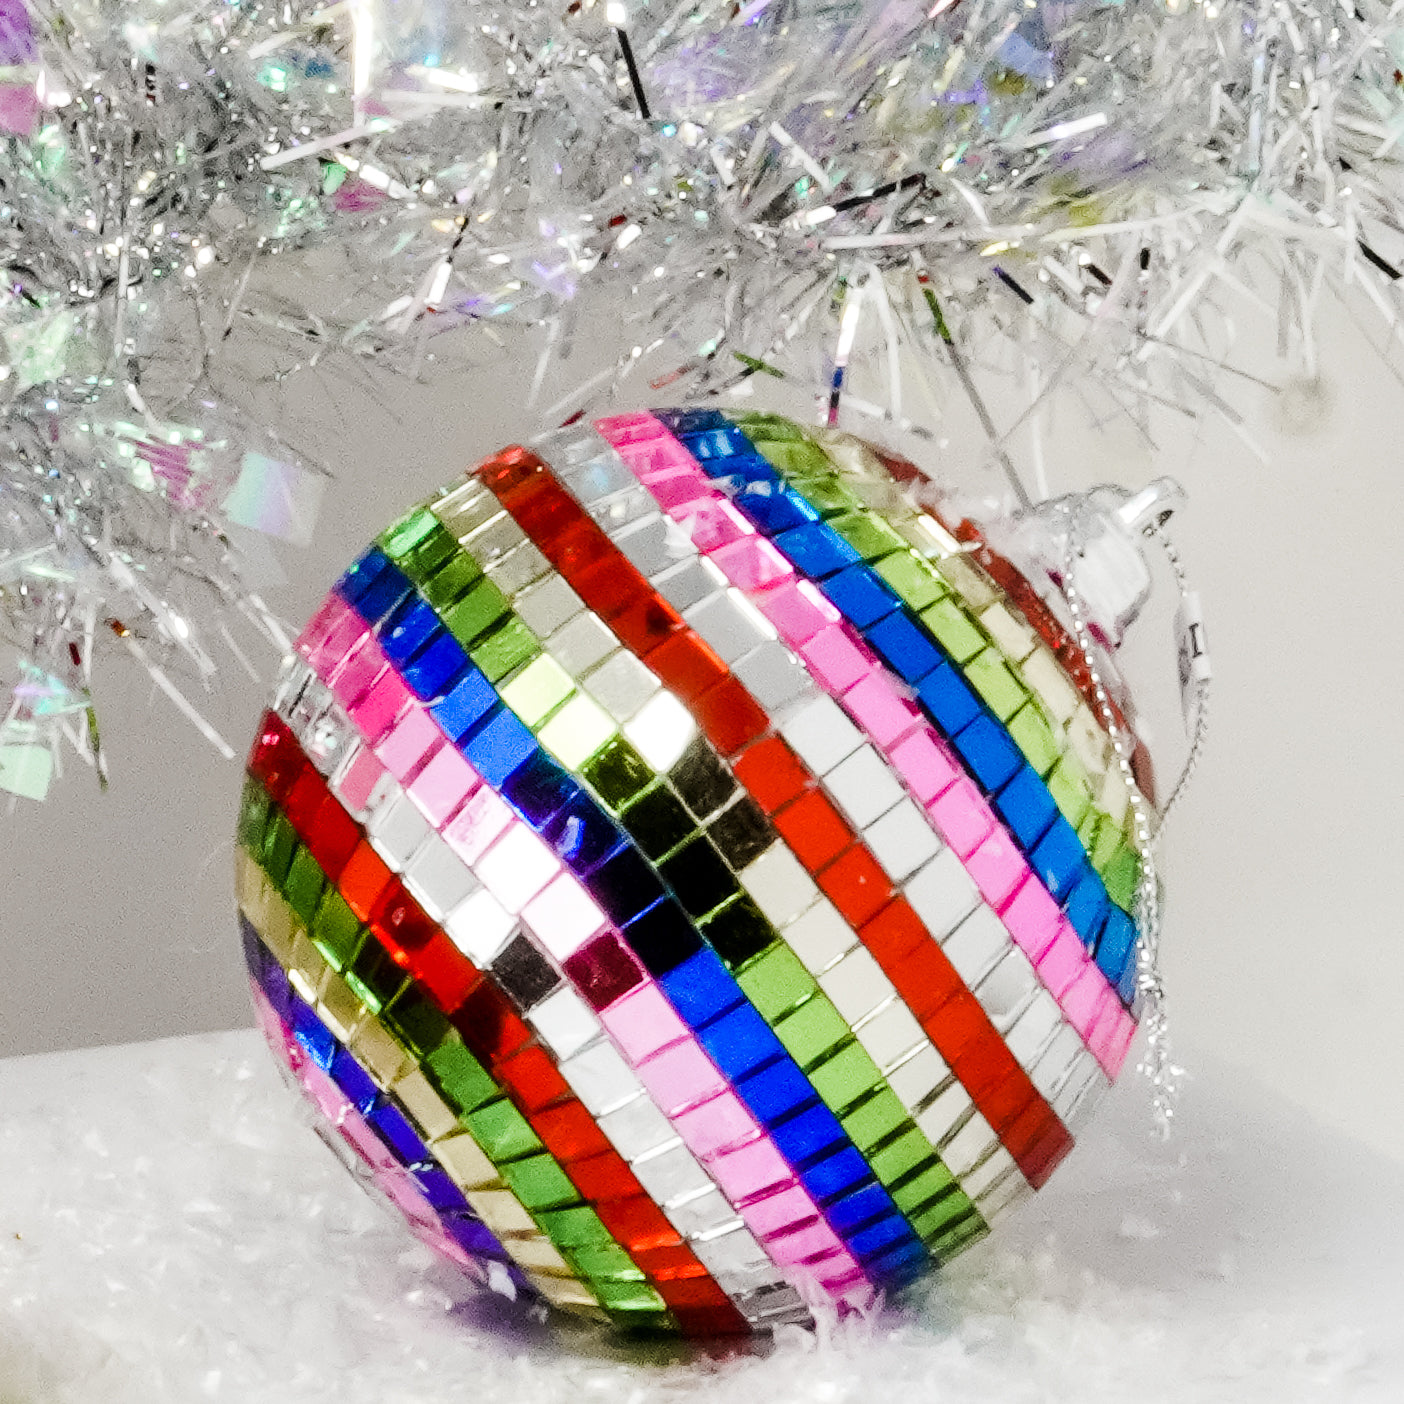 Bring back the 70's vibe with Multi-Color Rainbow Mirror Disco Ball Christmas Tree Ornament.